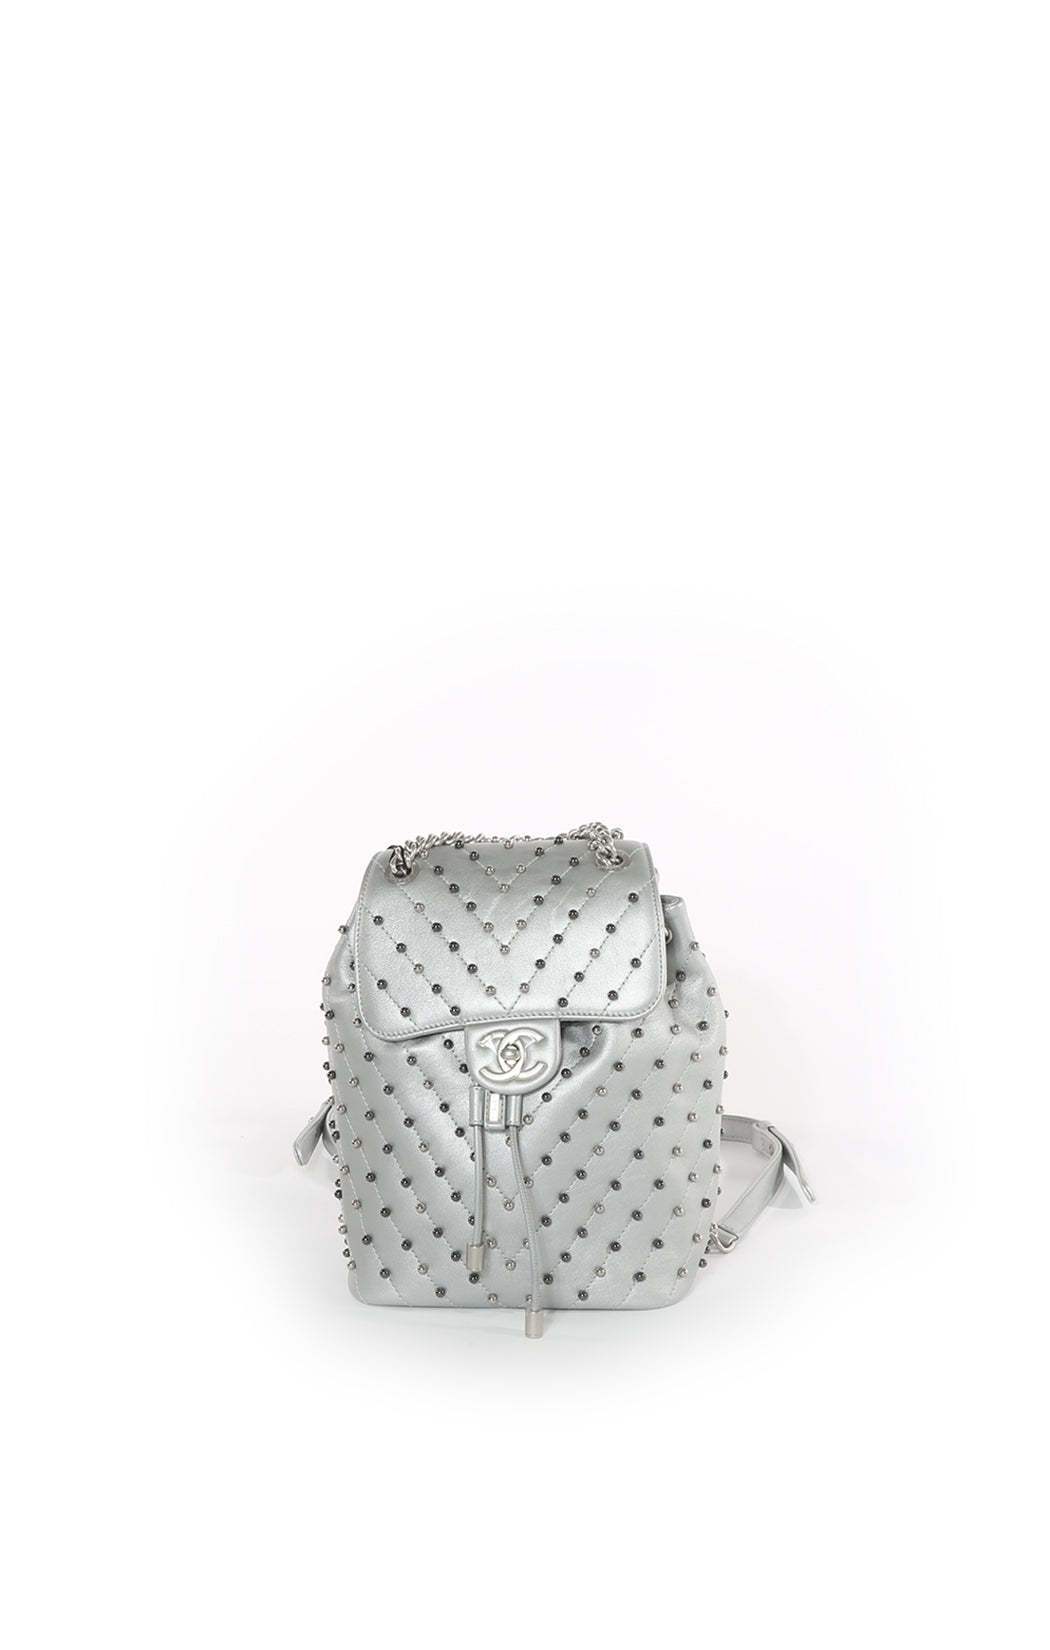 Front view of  CHANEL Backpack with Tags Size: 10 in x 12.25 in x 5 in